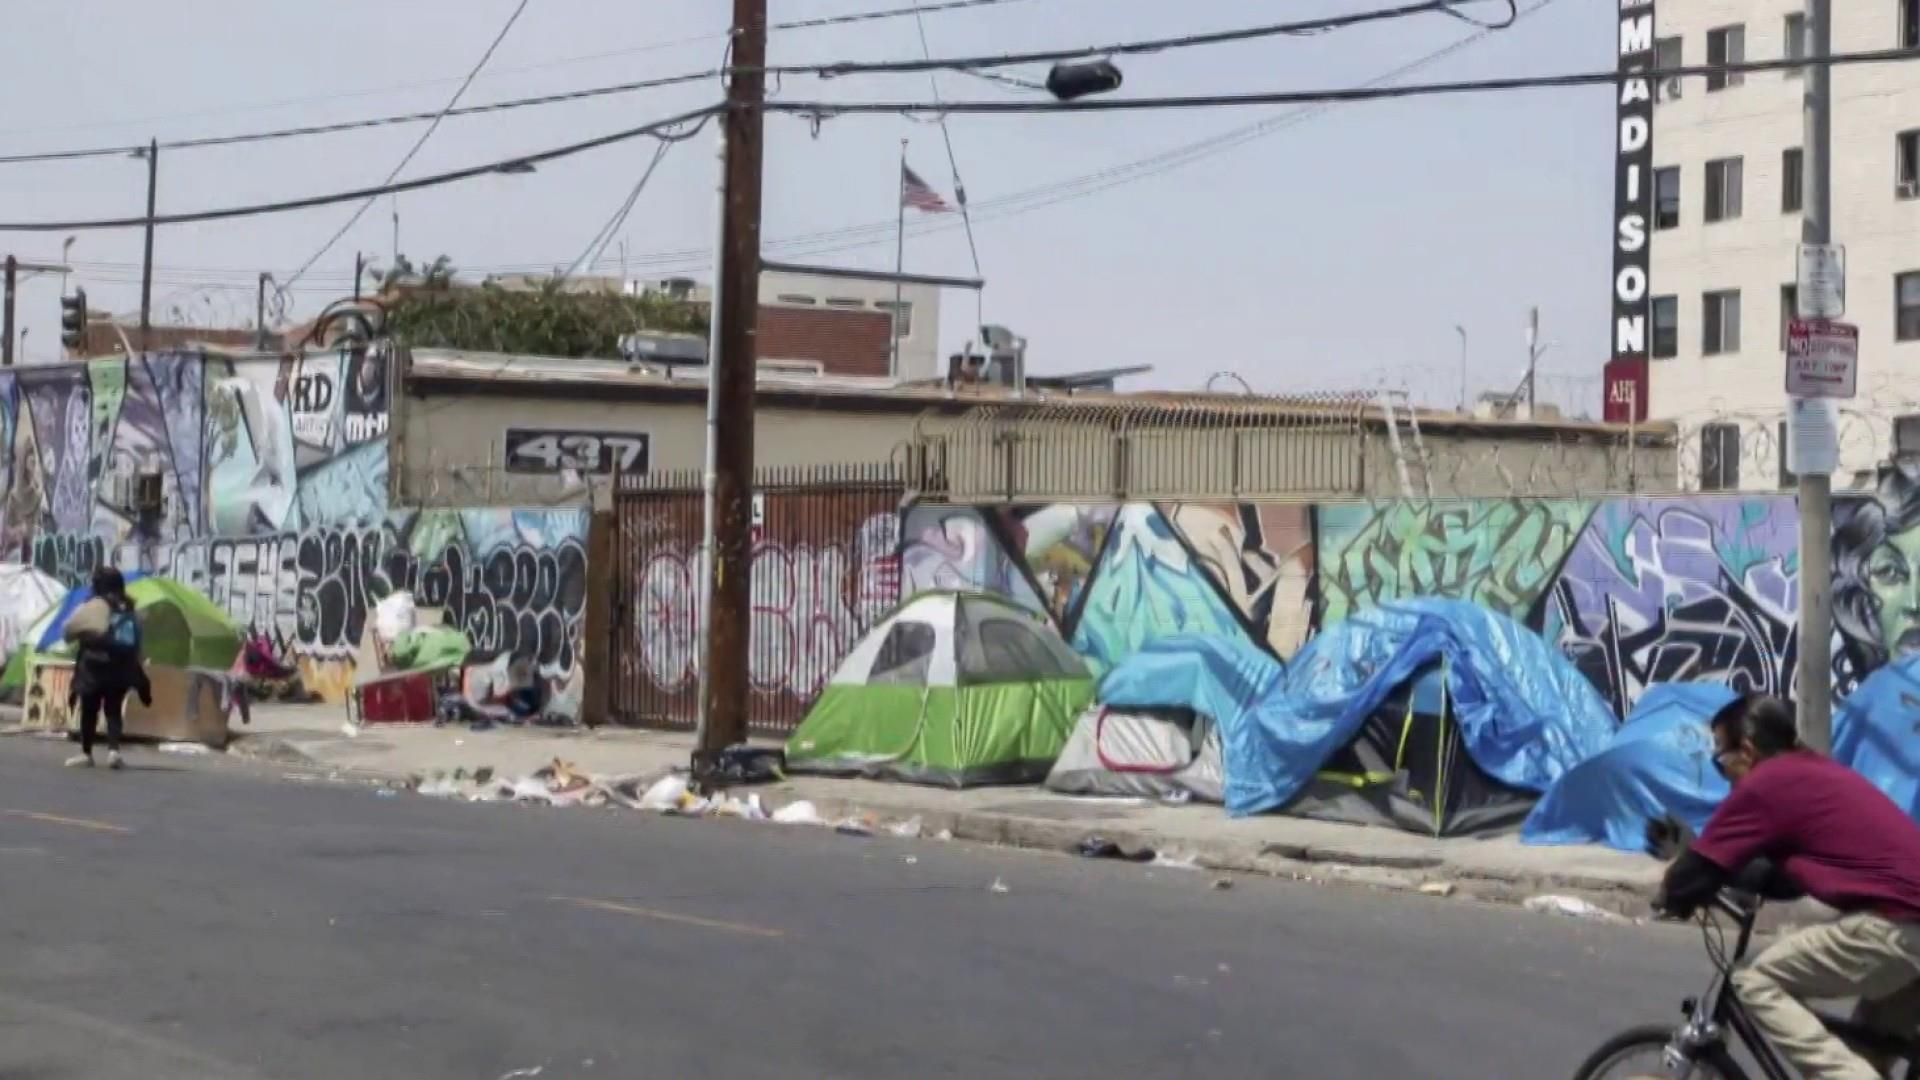 Homeless families in Calif. react to Trump's remarks